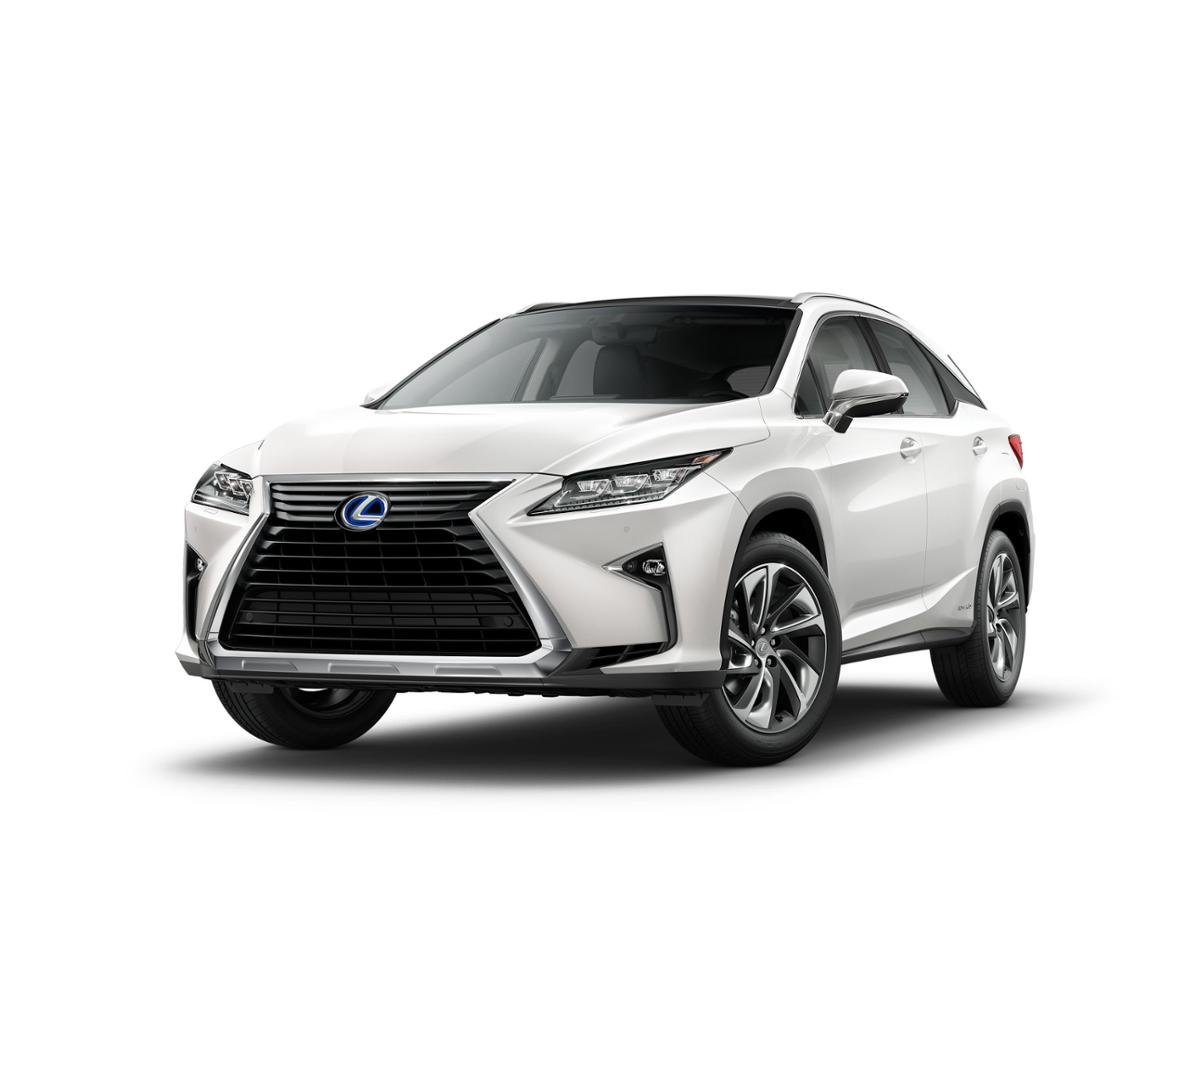 2018 Lexus RX 450h Vehicle Photo in Bedford, NH 03110